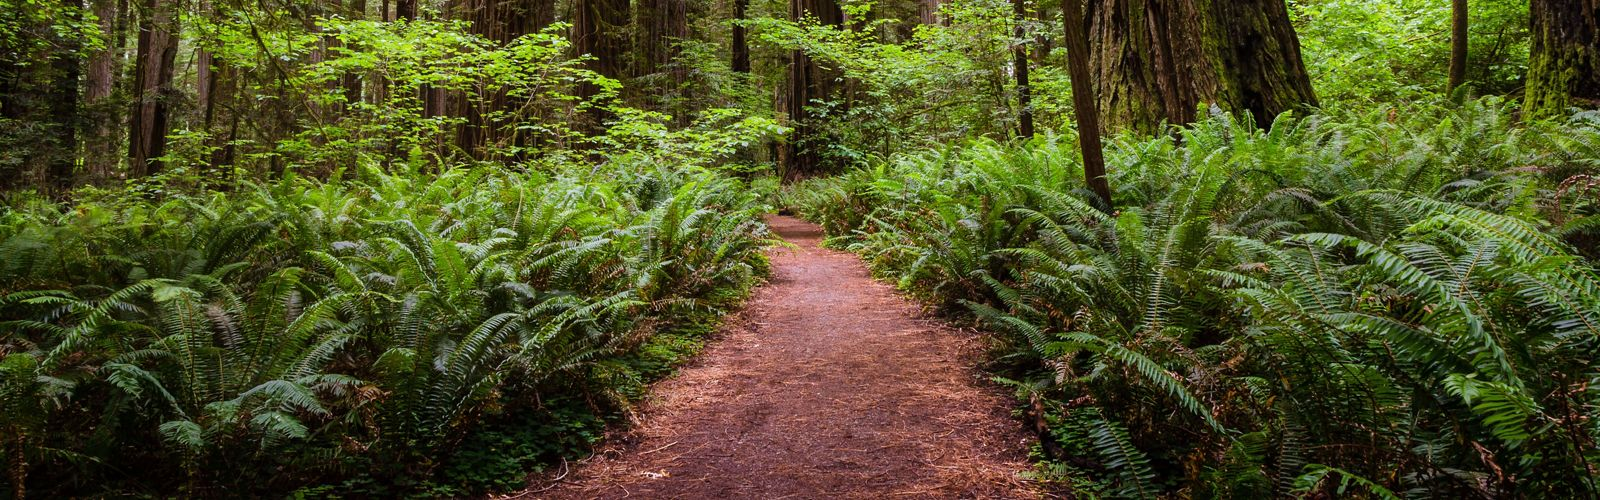 Empty path through a redwood sequoia forest near the coast of California.